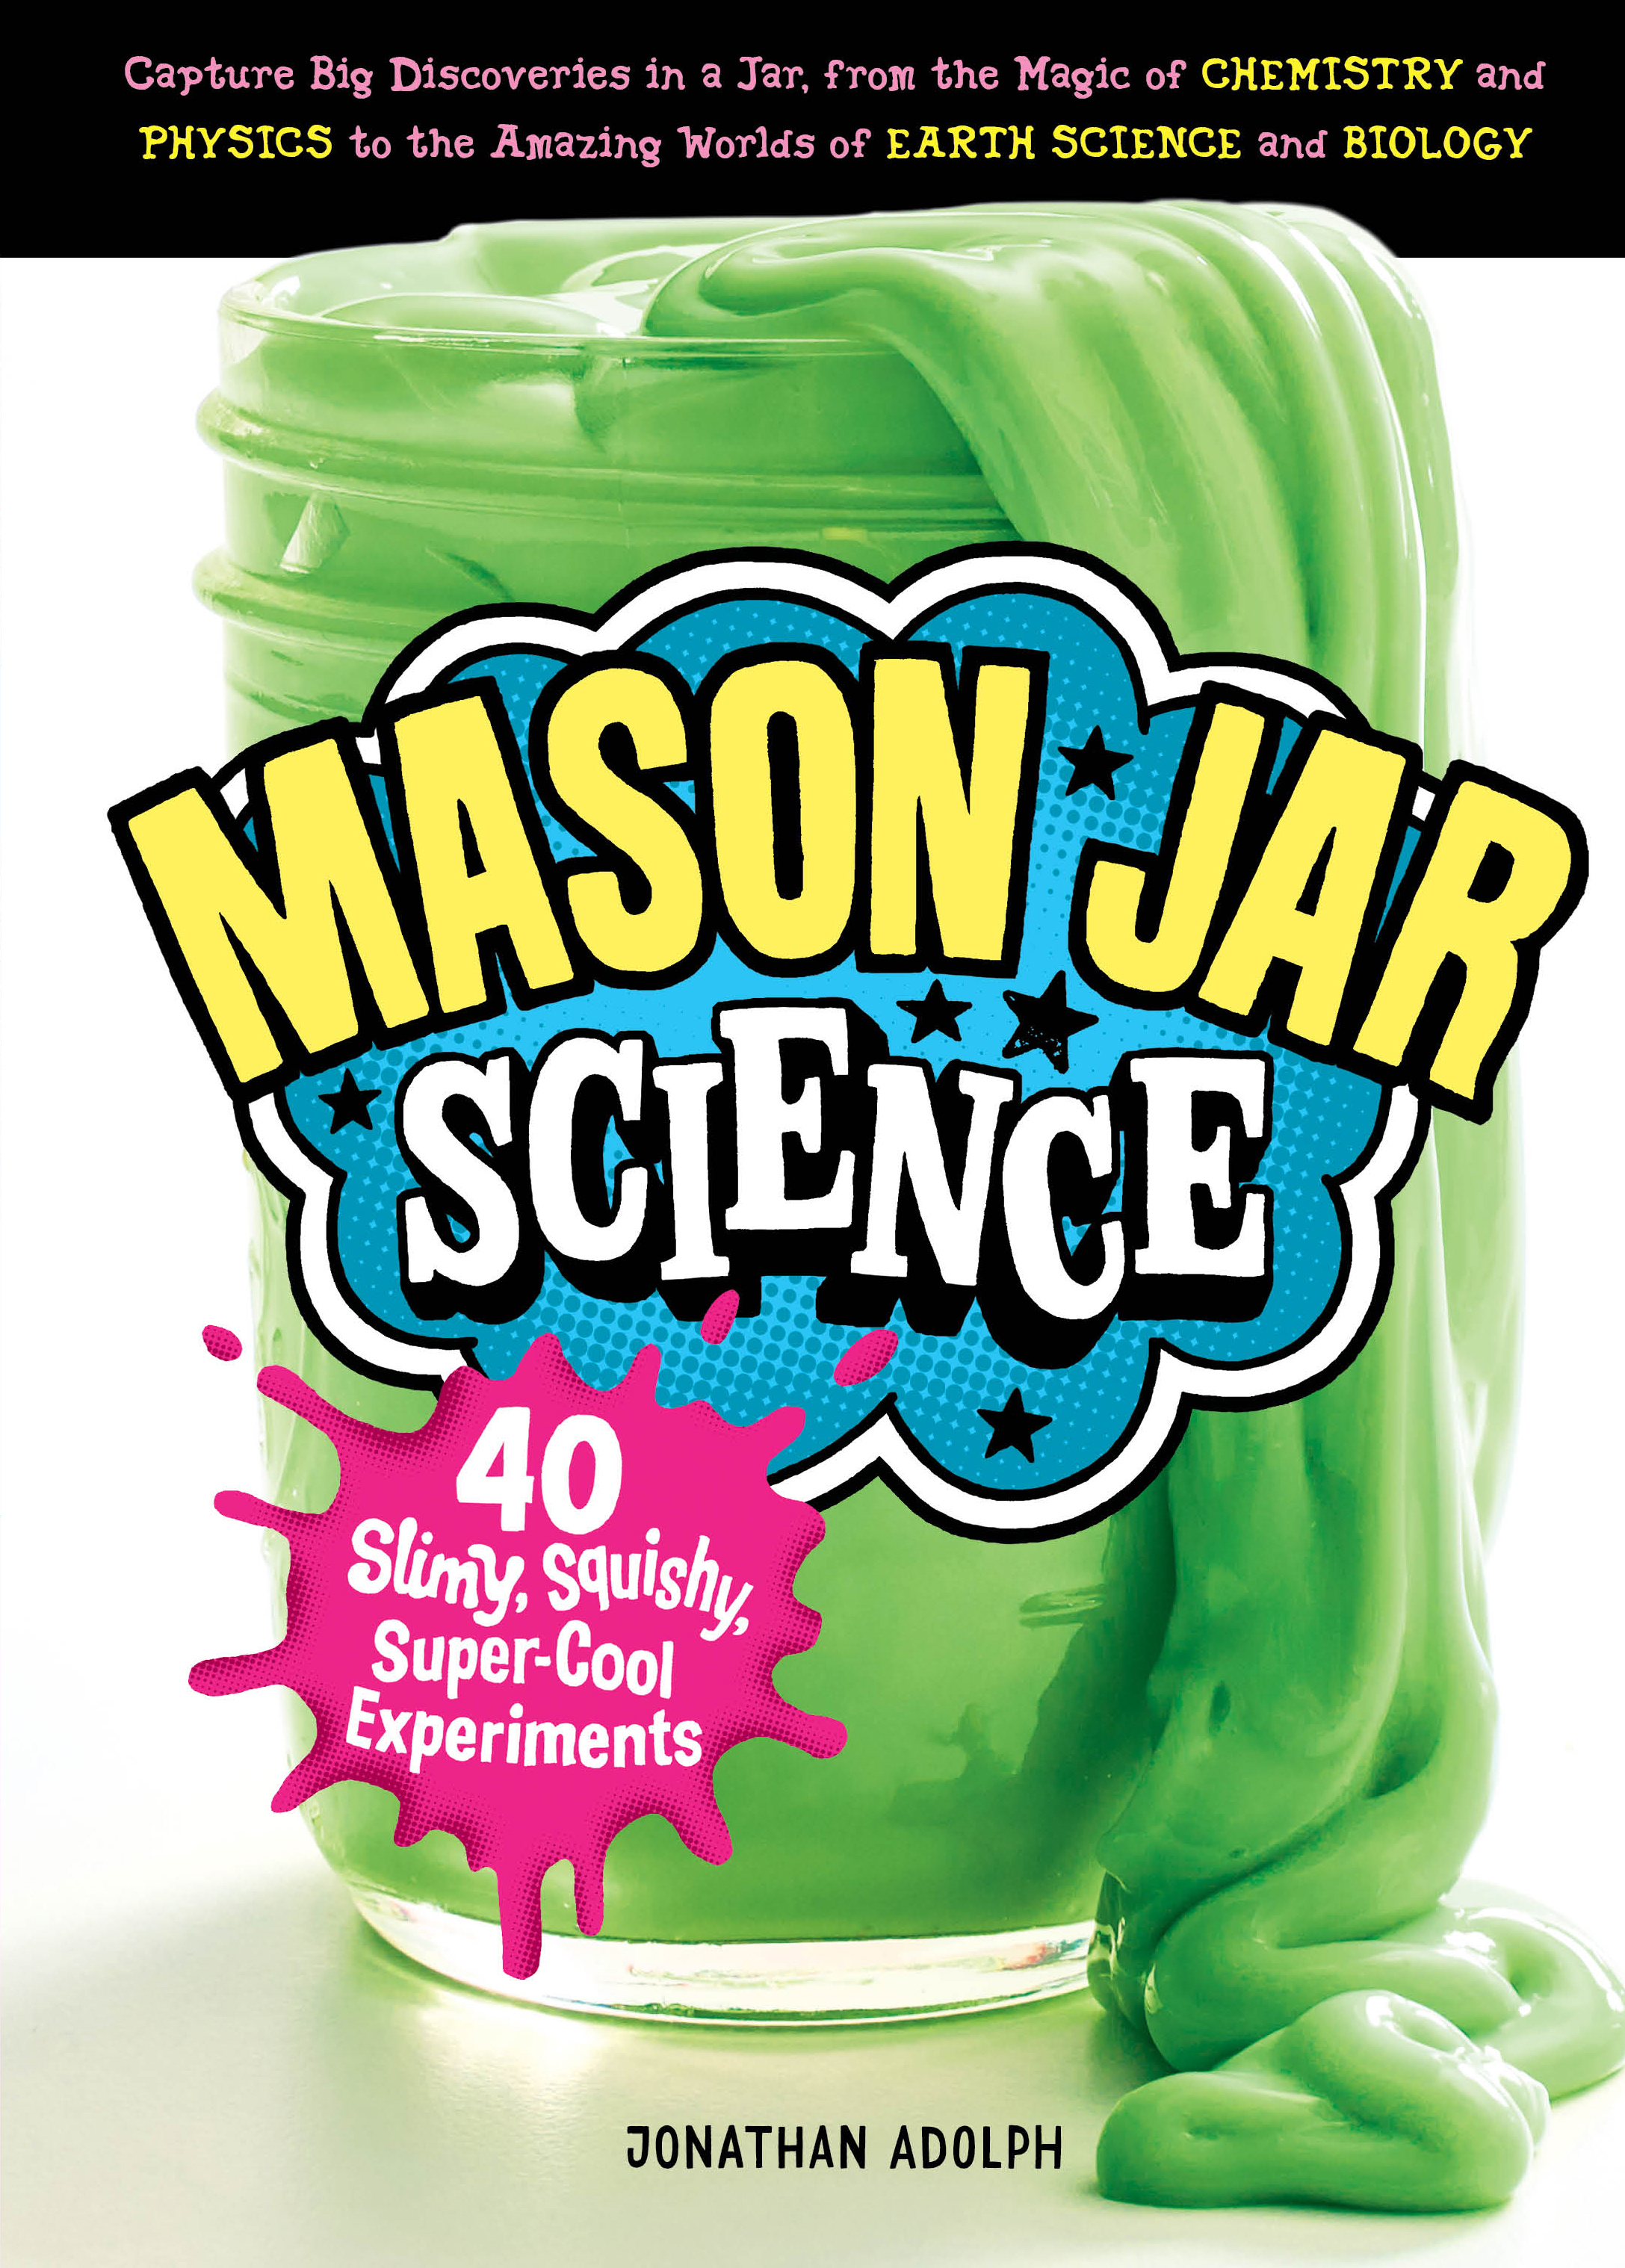 Mason Jar Science 40 Slimy, Squishy, Super-Cool Experiments; Capture Big Discoveries in a Jar, from the Magic of Chemistry and Physics to the Amazing Worlds of Earth Science and Biology - Jonathan Adolph